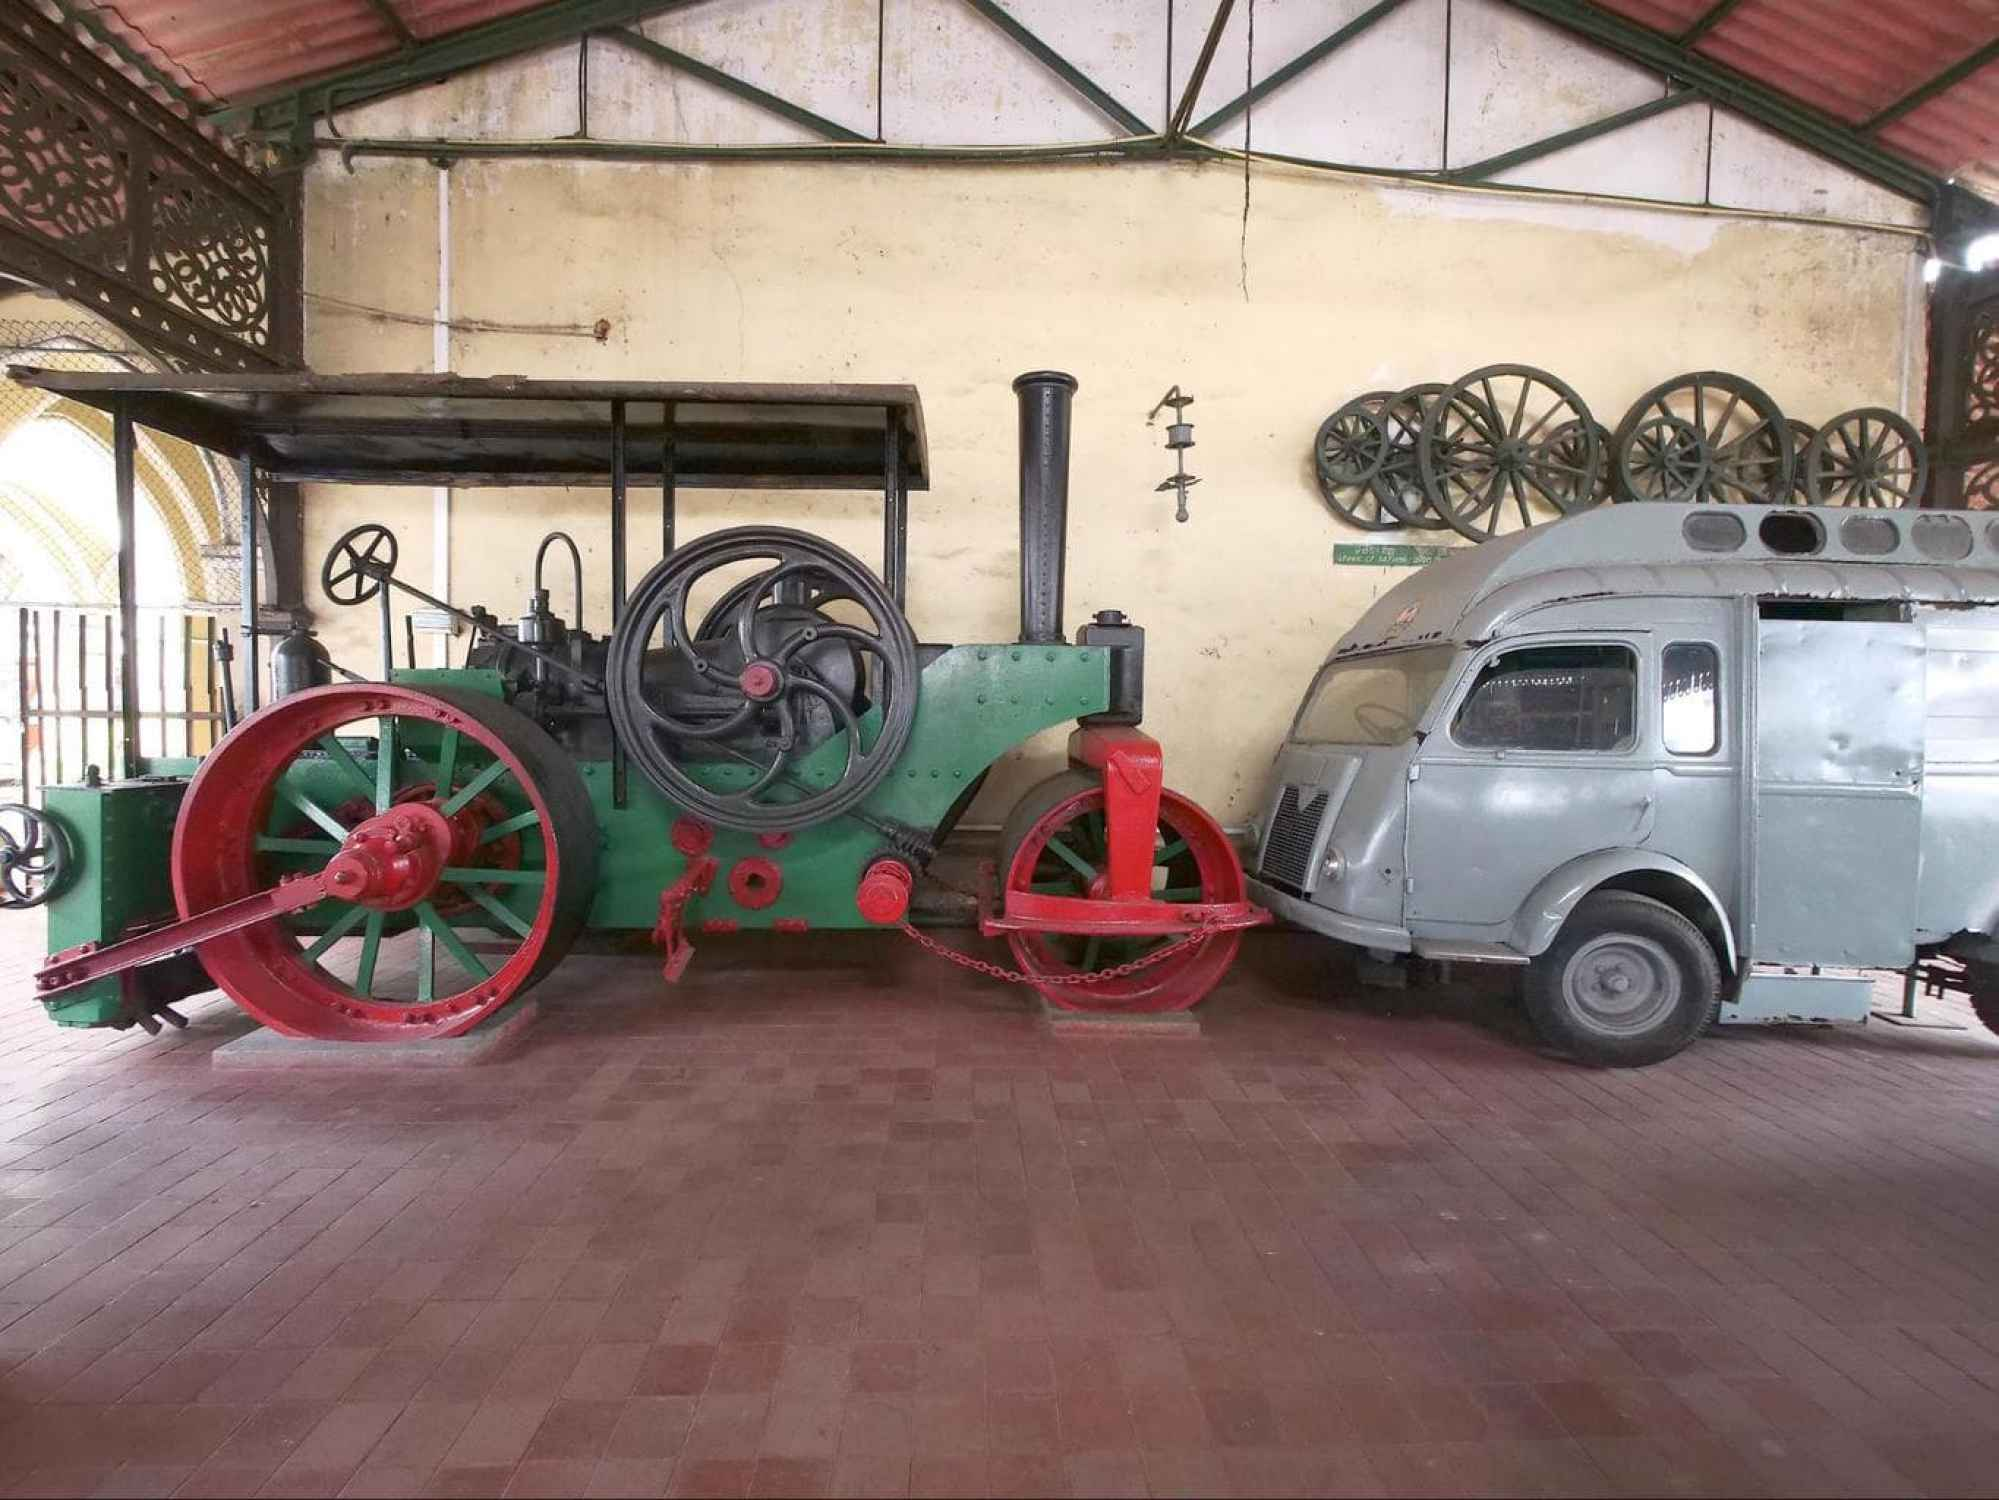 Transport Museum in the The Old Town Hall Building